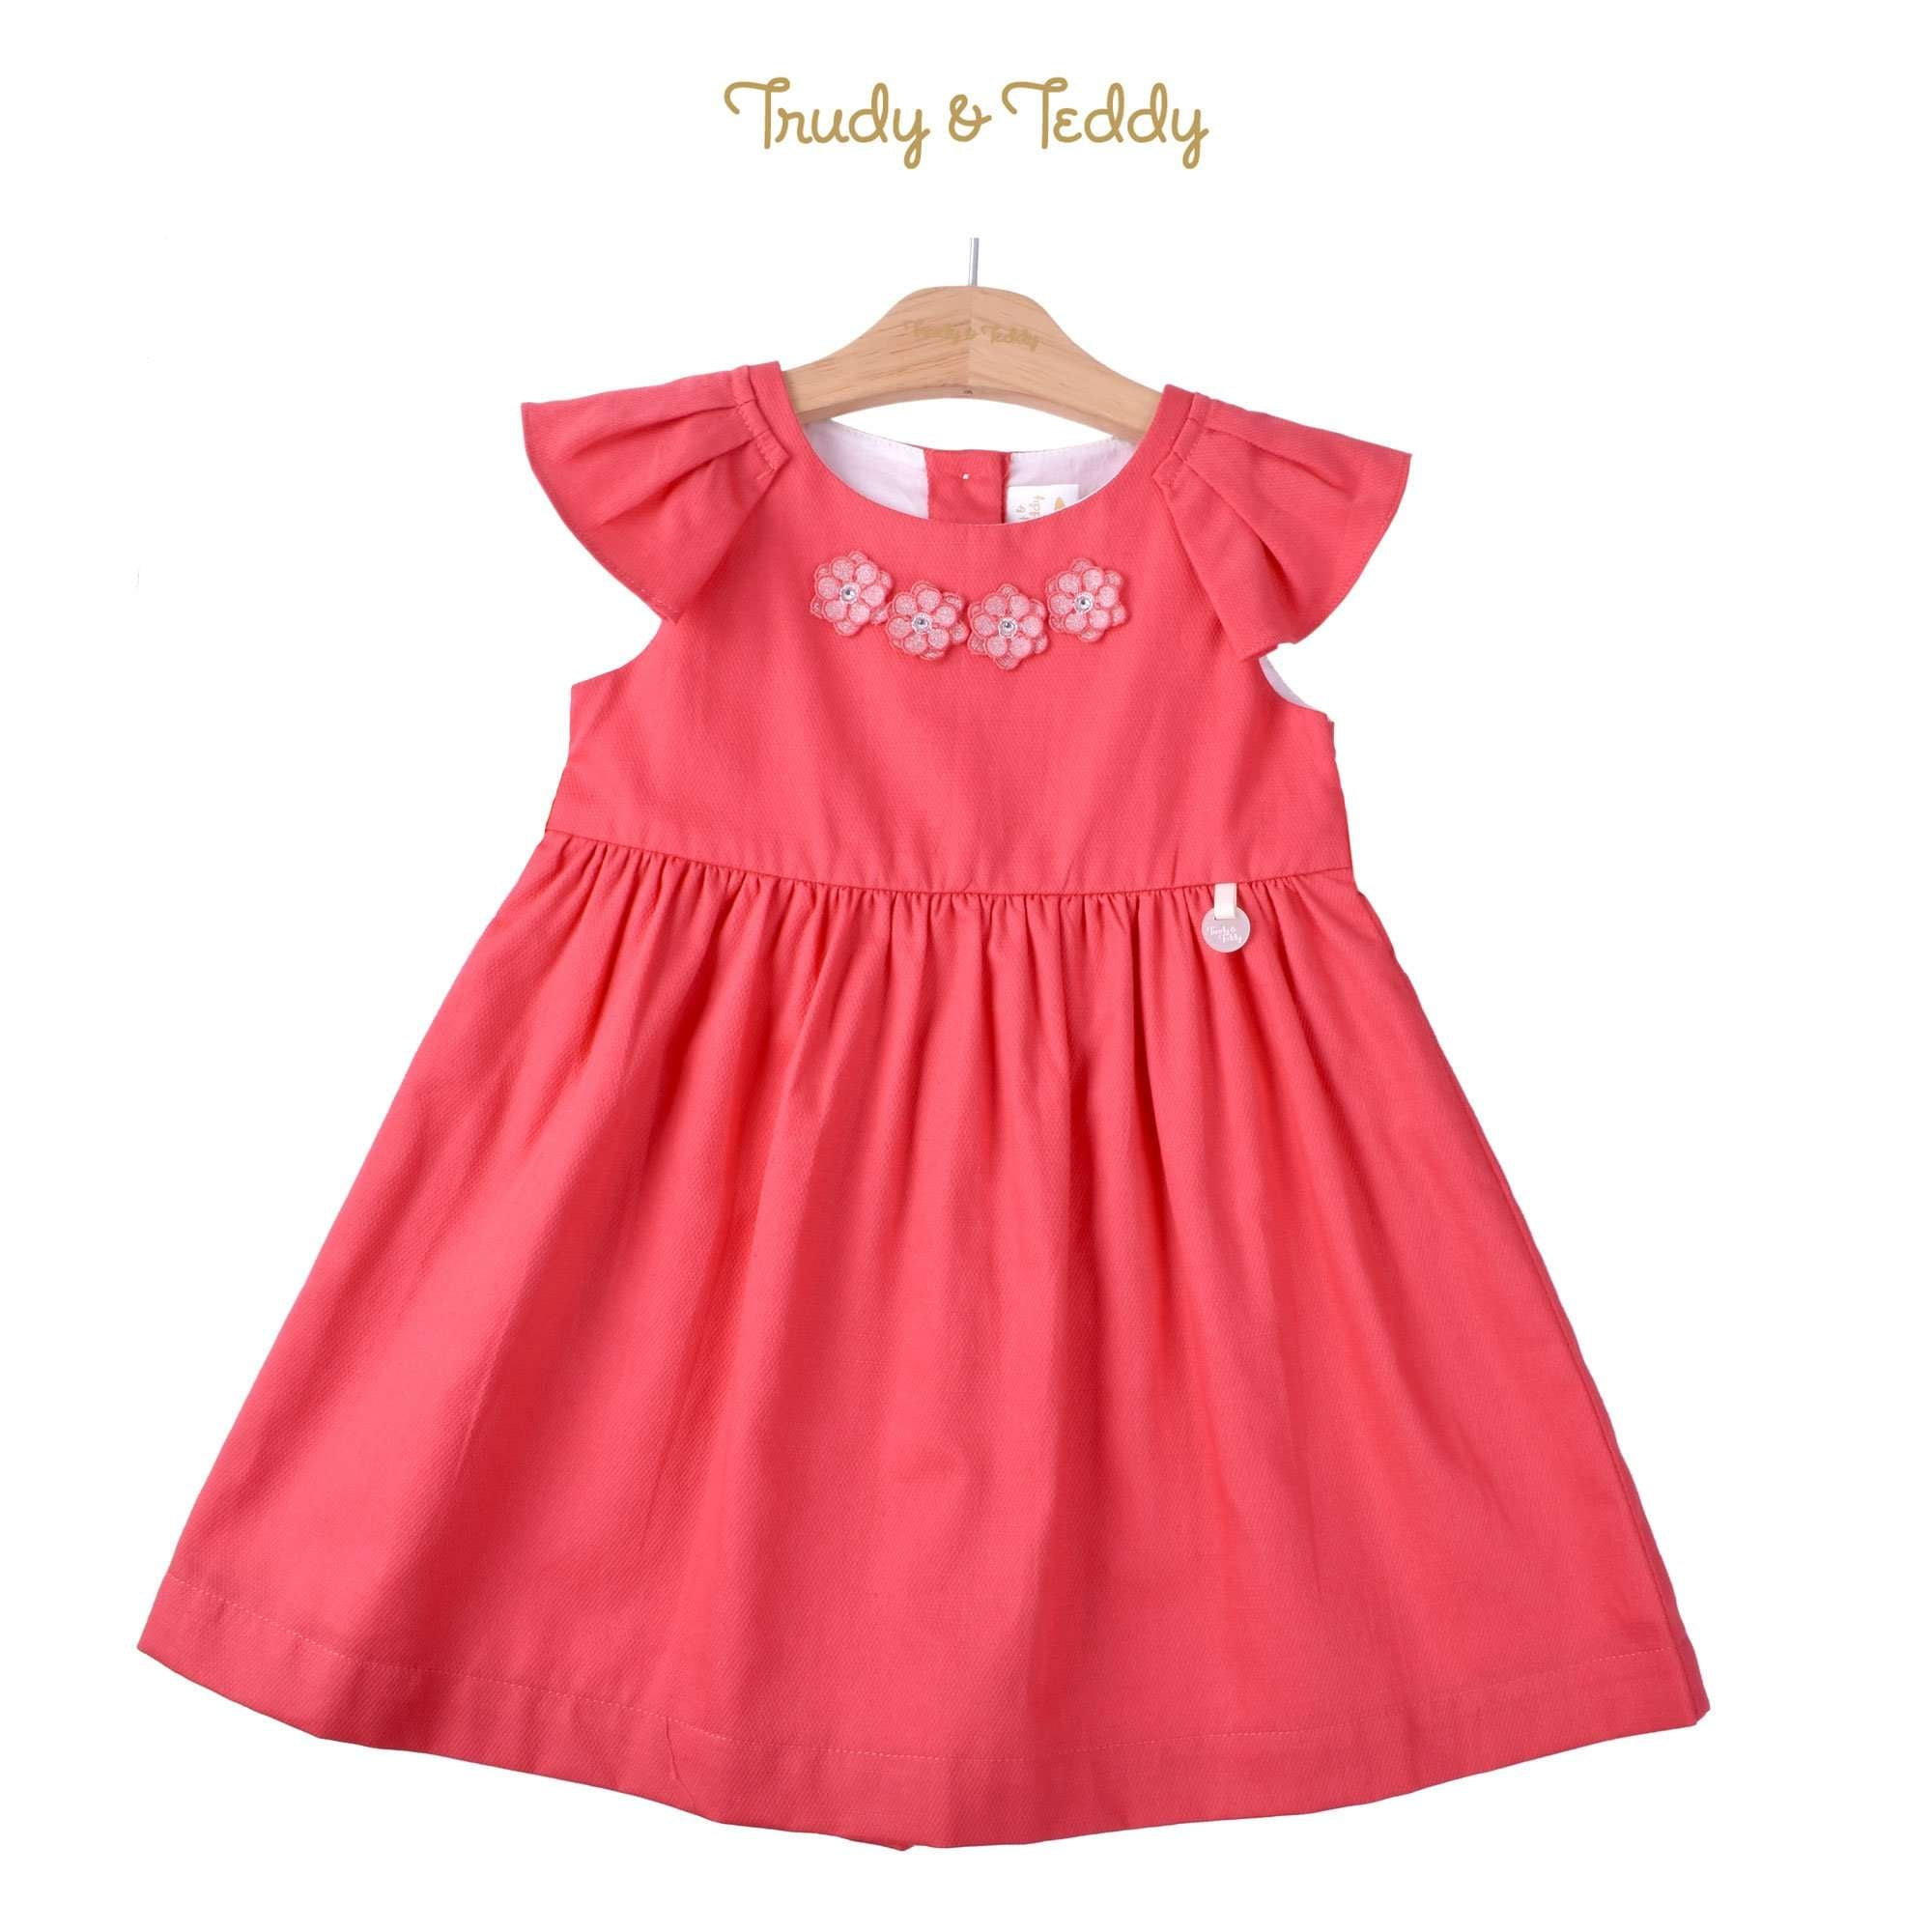 Trudy & Teddy Girl Woven Short Sleeve Dress- Red 815164-311 : Buy Trudy & Teddy online at CMG.MY